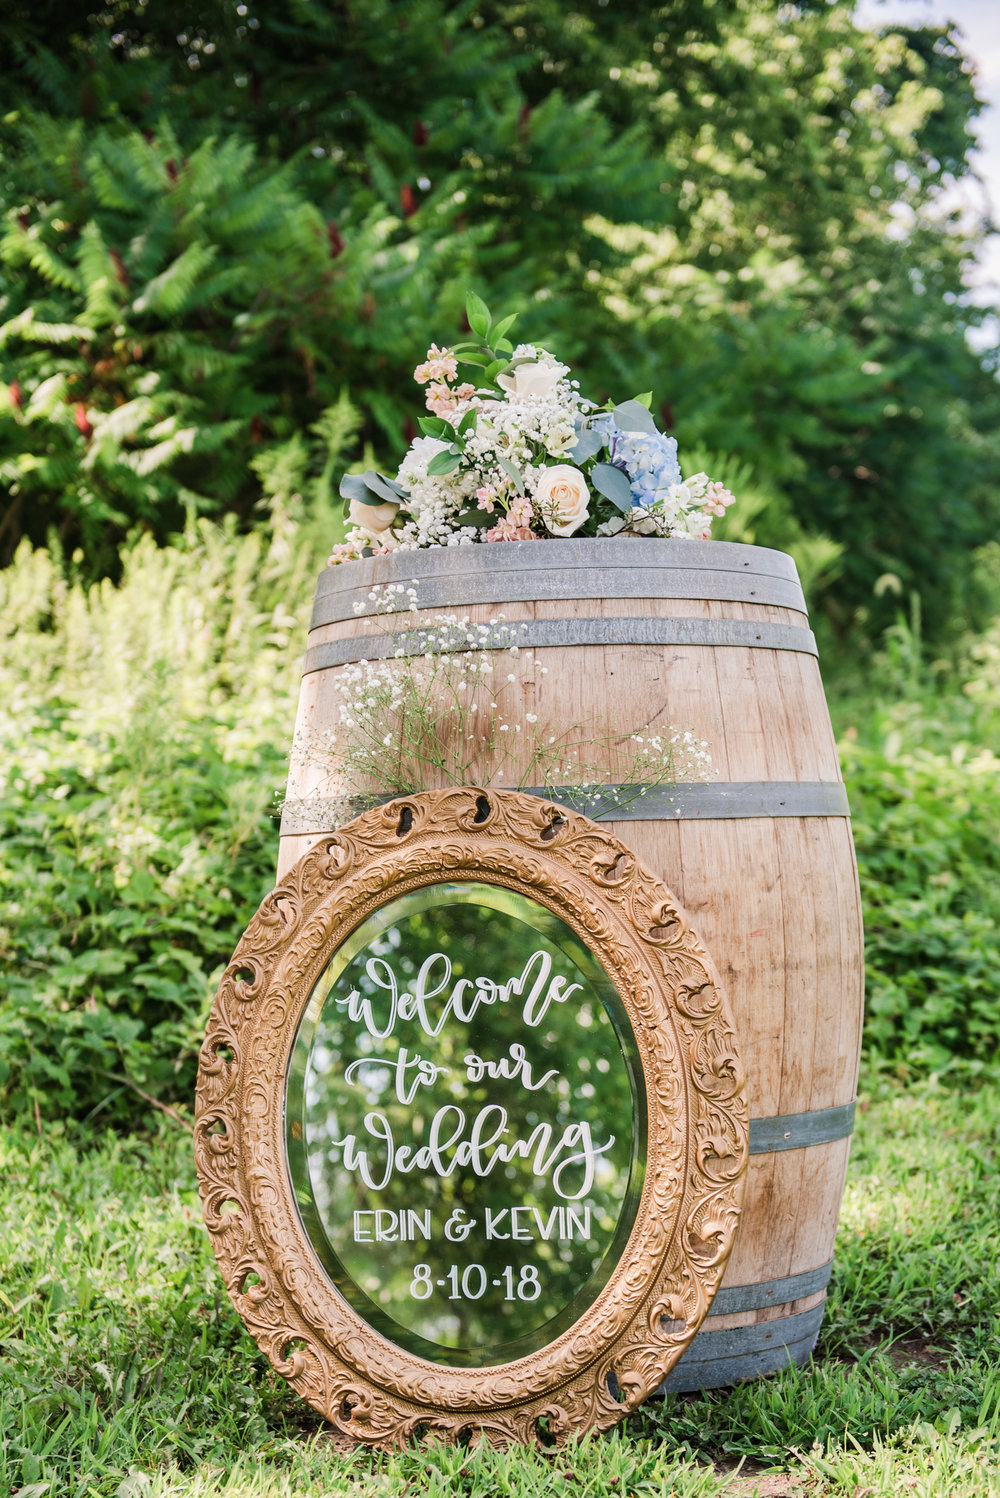 Wolf_Oak_Acres_Central_NY_Wedding_JILL_STUDIO_Rochester_NY_Photographer_DSC_4959.jpg